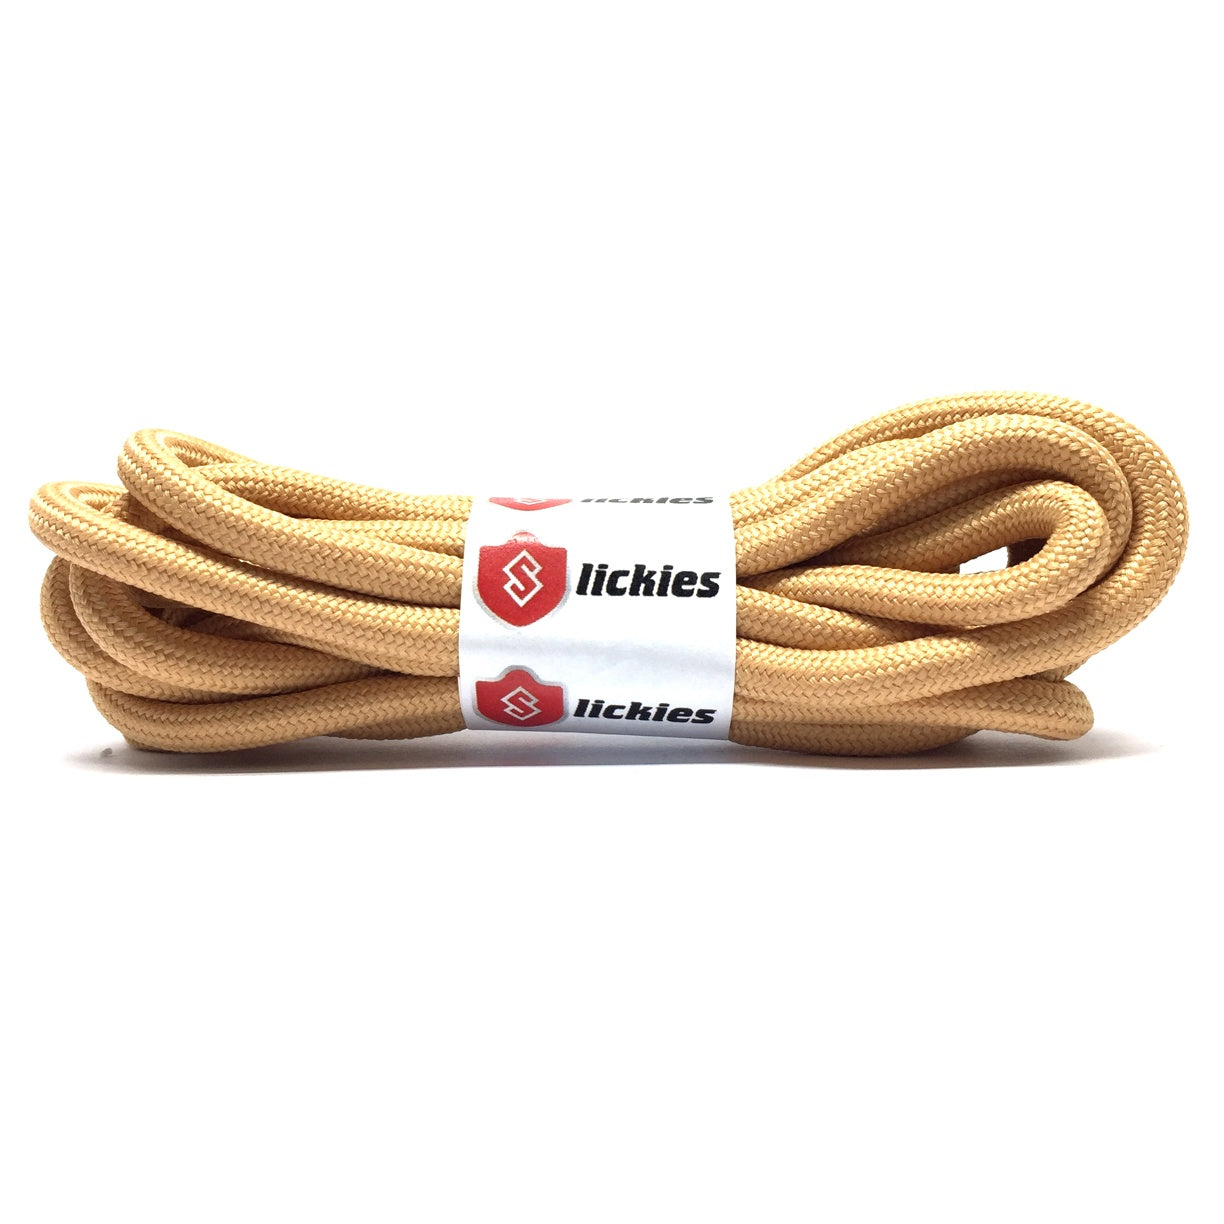 Rope Laces - BASICS Rope Laces - Clay Brown For Yeezy Boost 350 V2 Clay